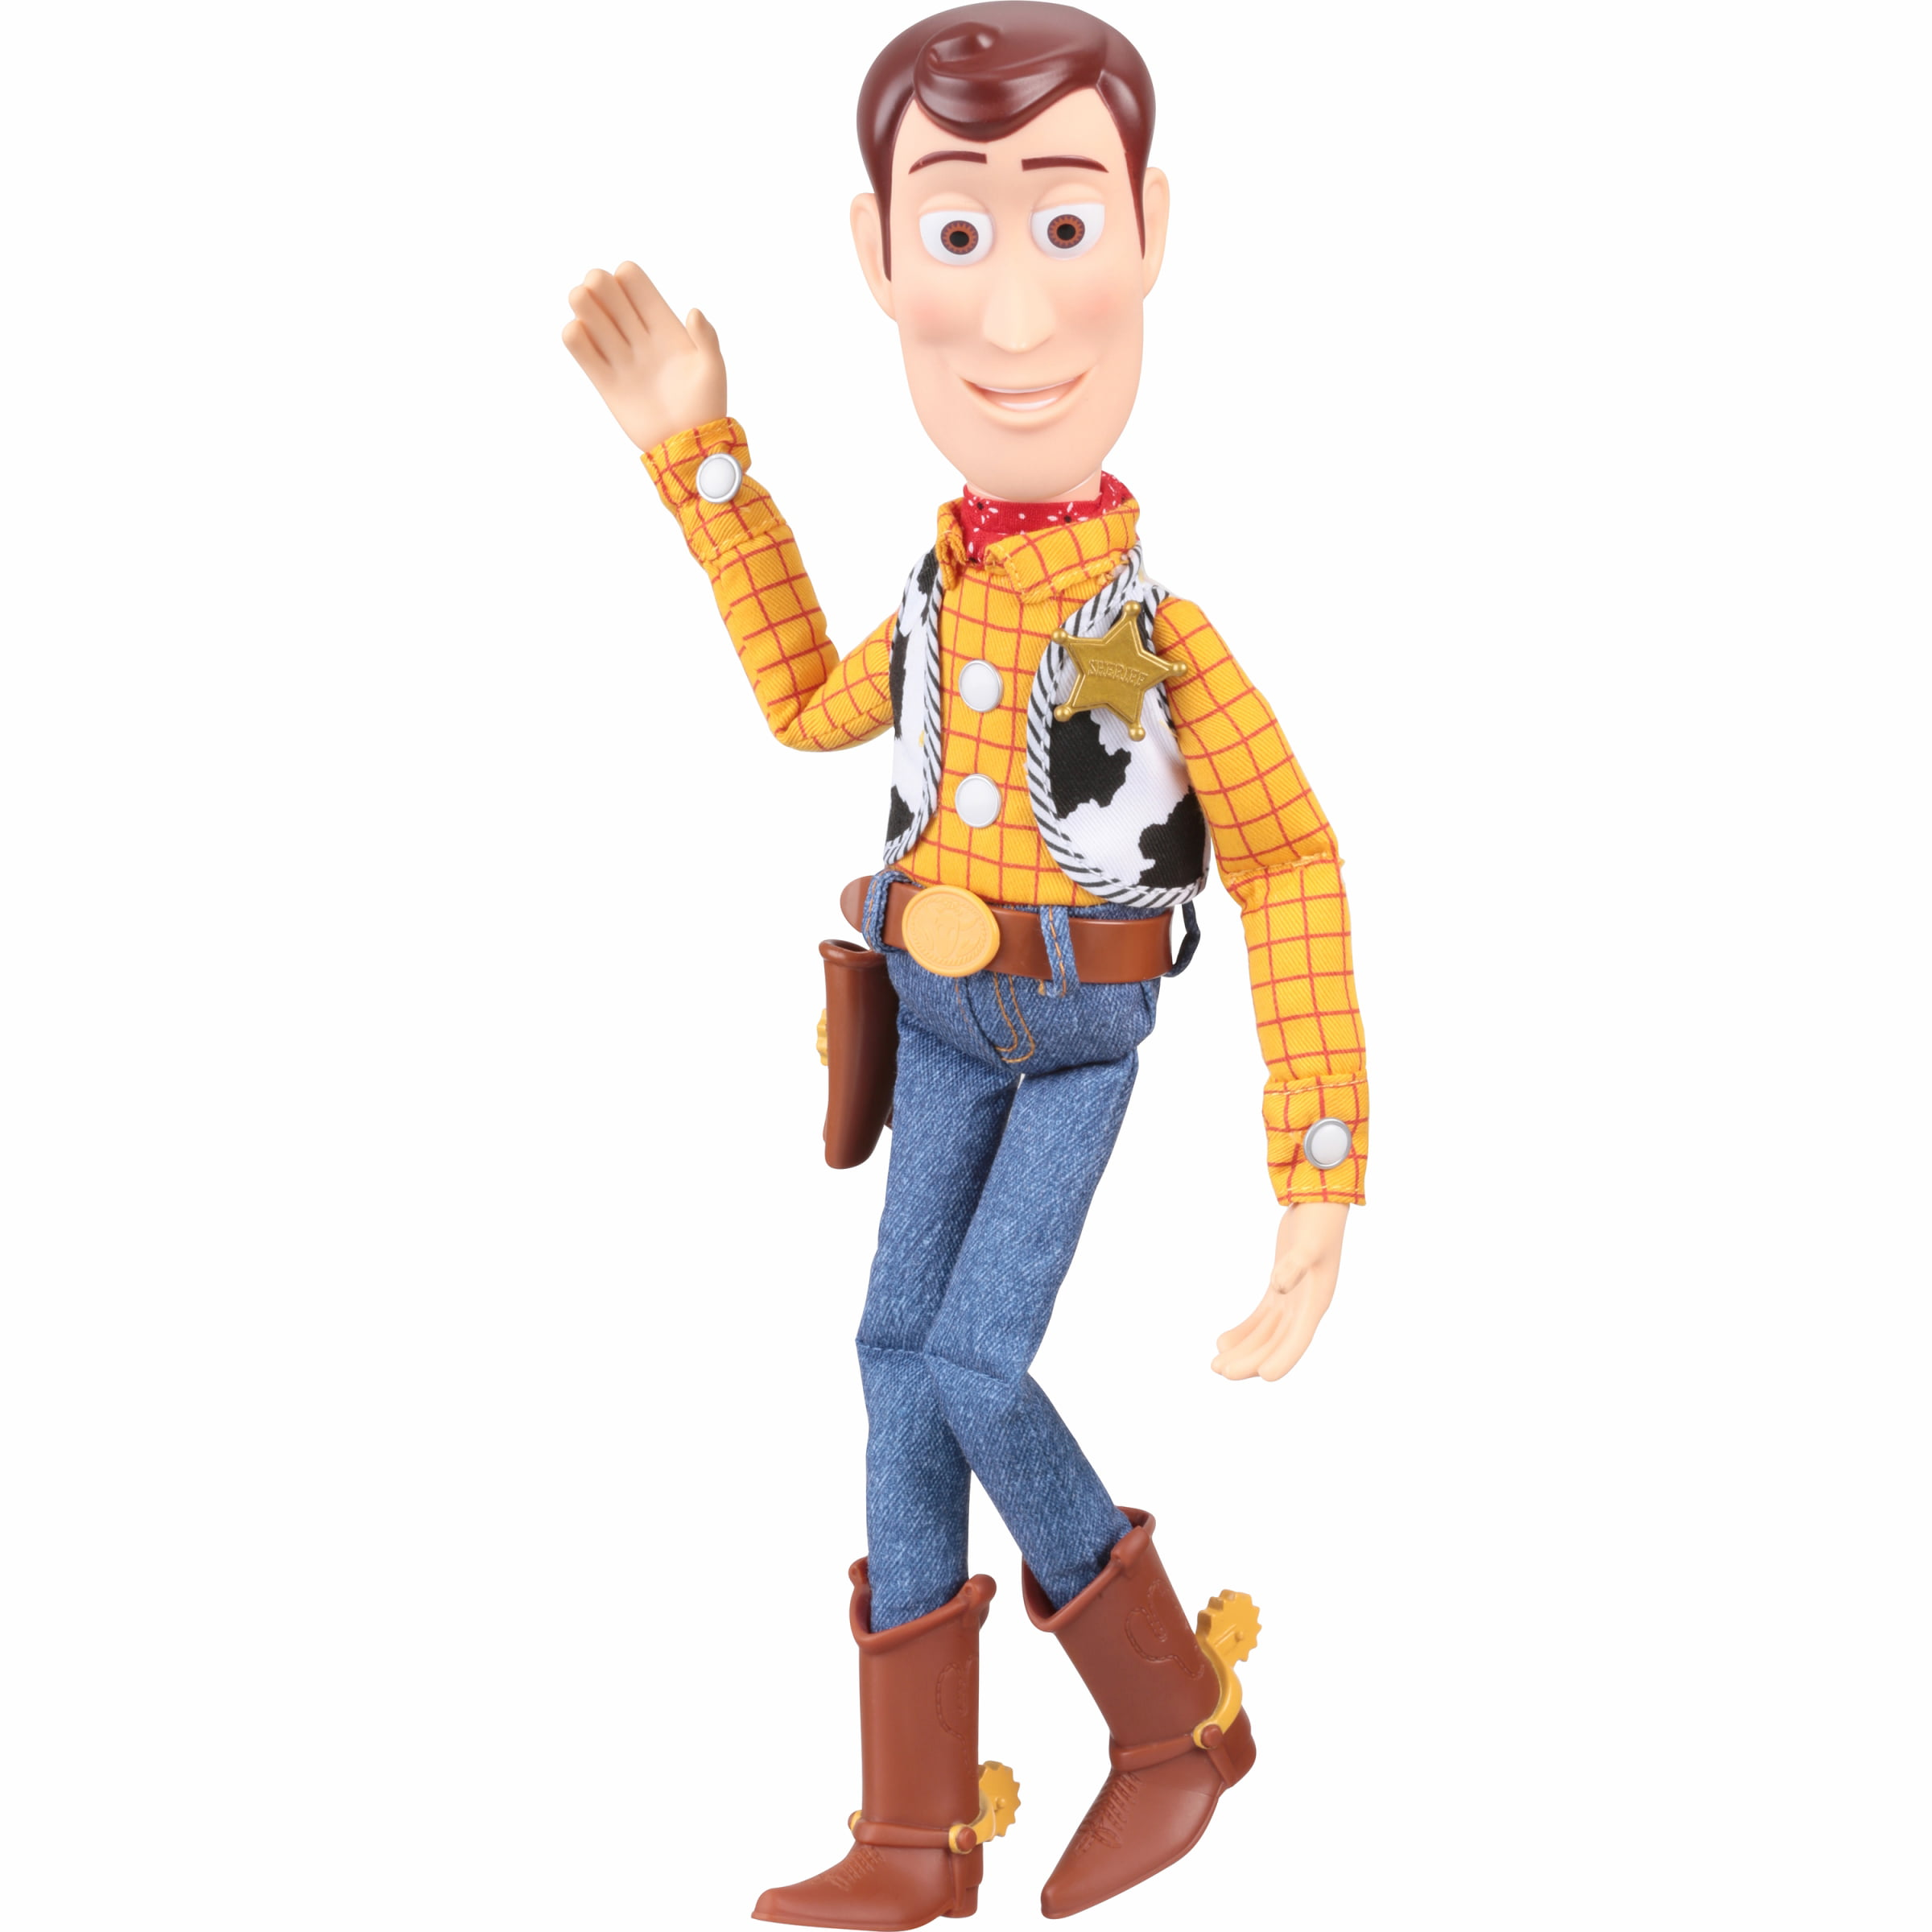 2dc8198e6bd98 Toy Story Talking Woody Action Figure - Walmart.com